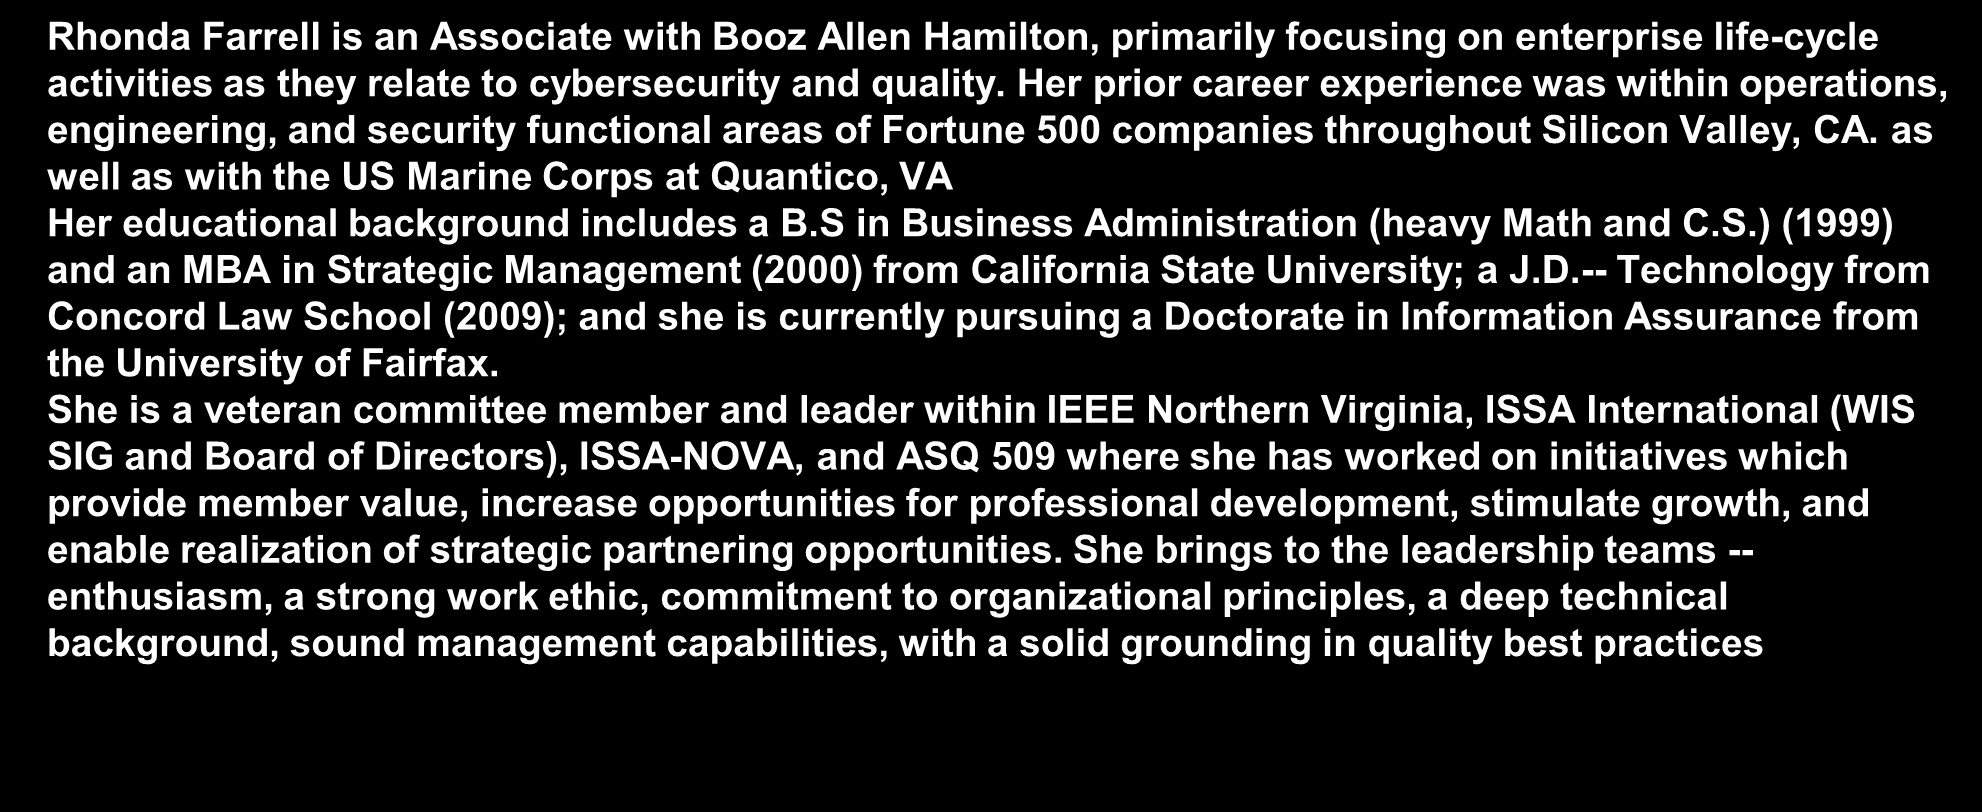 July 27, 2015 Speaker Rhonda Farrell Associate, Booz Allen Hamilton Rhonda Farrell is an Associate with Booz Allen Hamilton, primarily focusing on enterprise life-cycle activities as they relate to